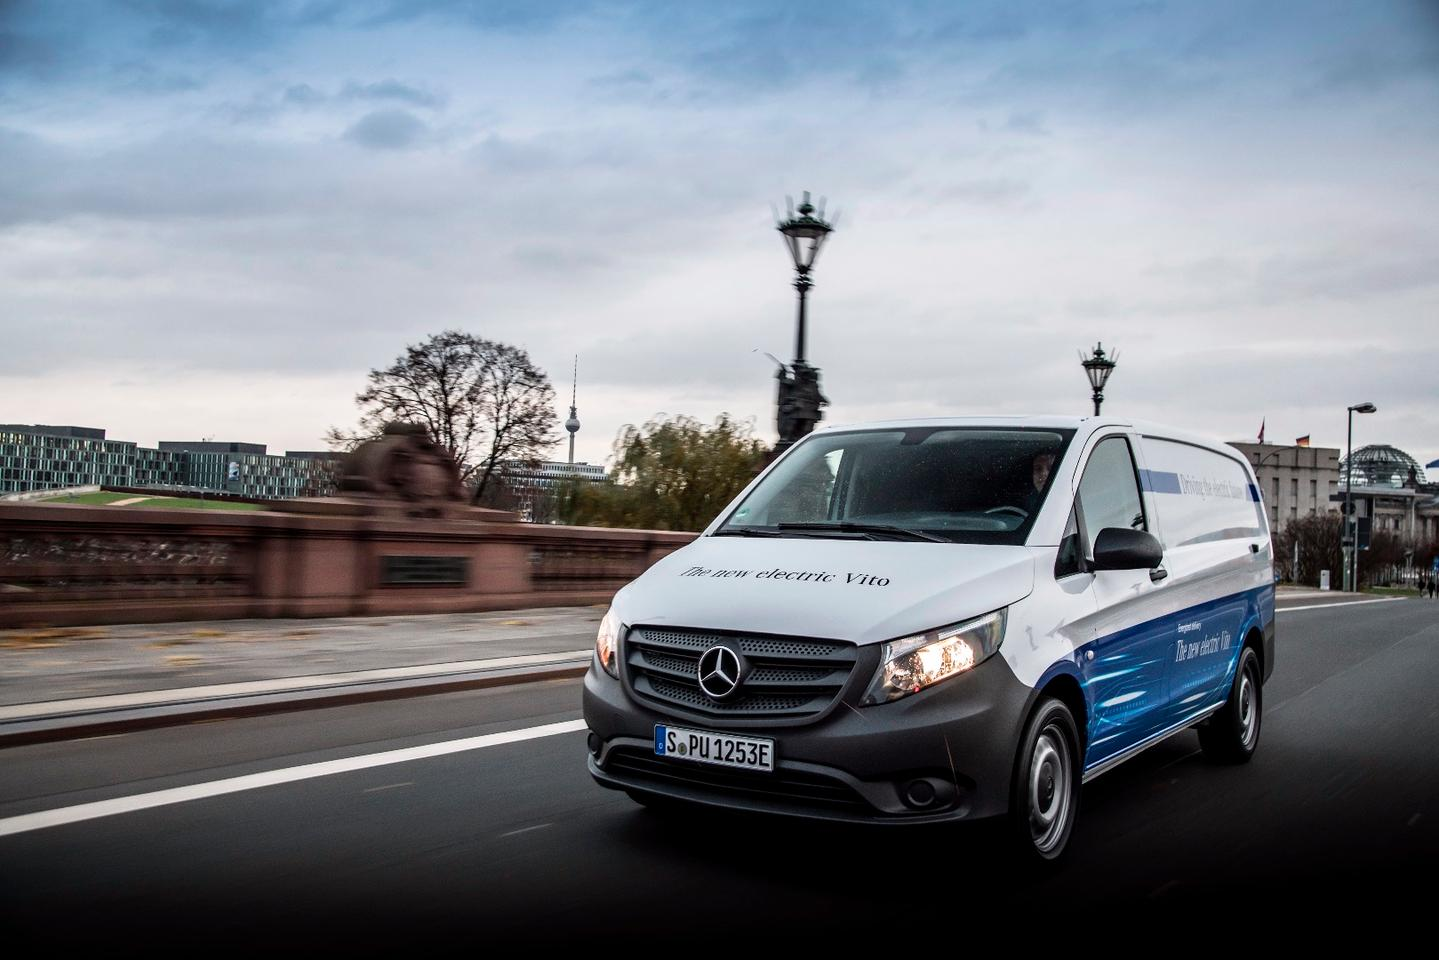 Mercedes is initially restricting eVitopre-orders to Germany with the first 1,000 customers receiving a complimentary Wallbox charging system